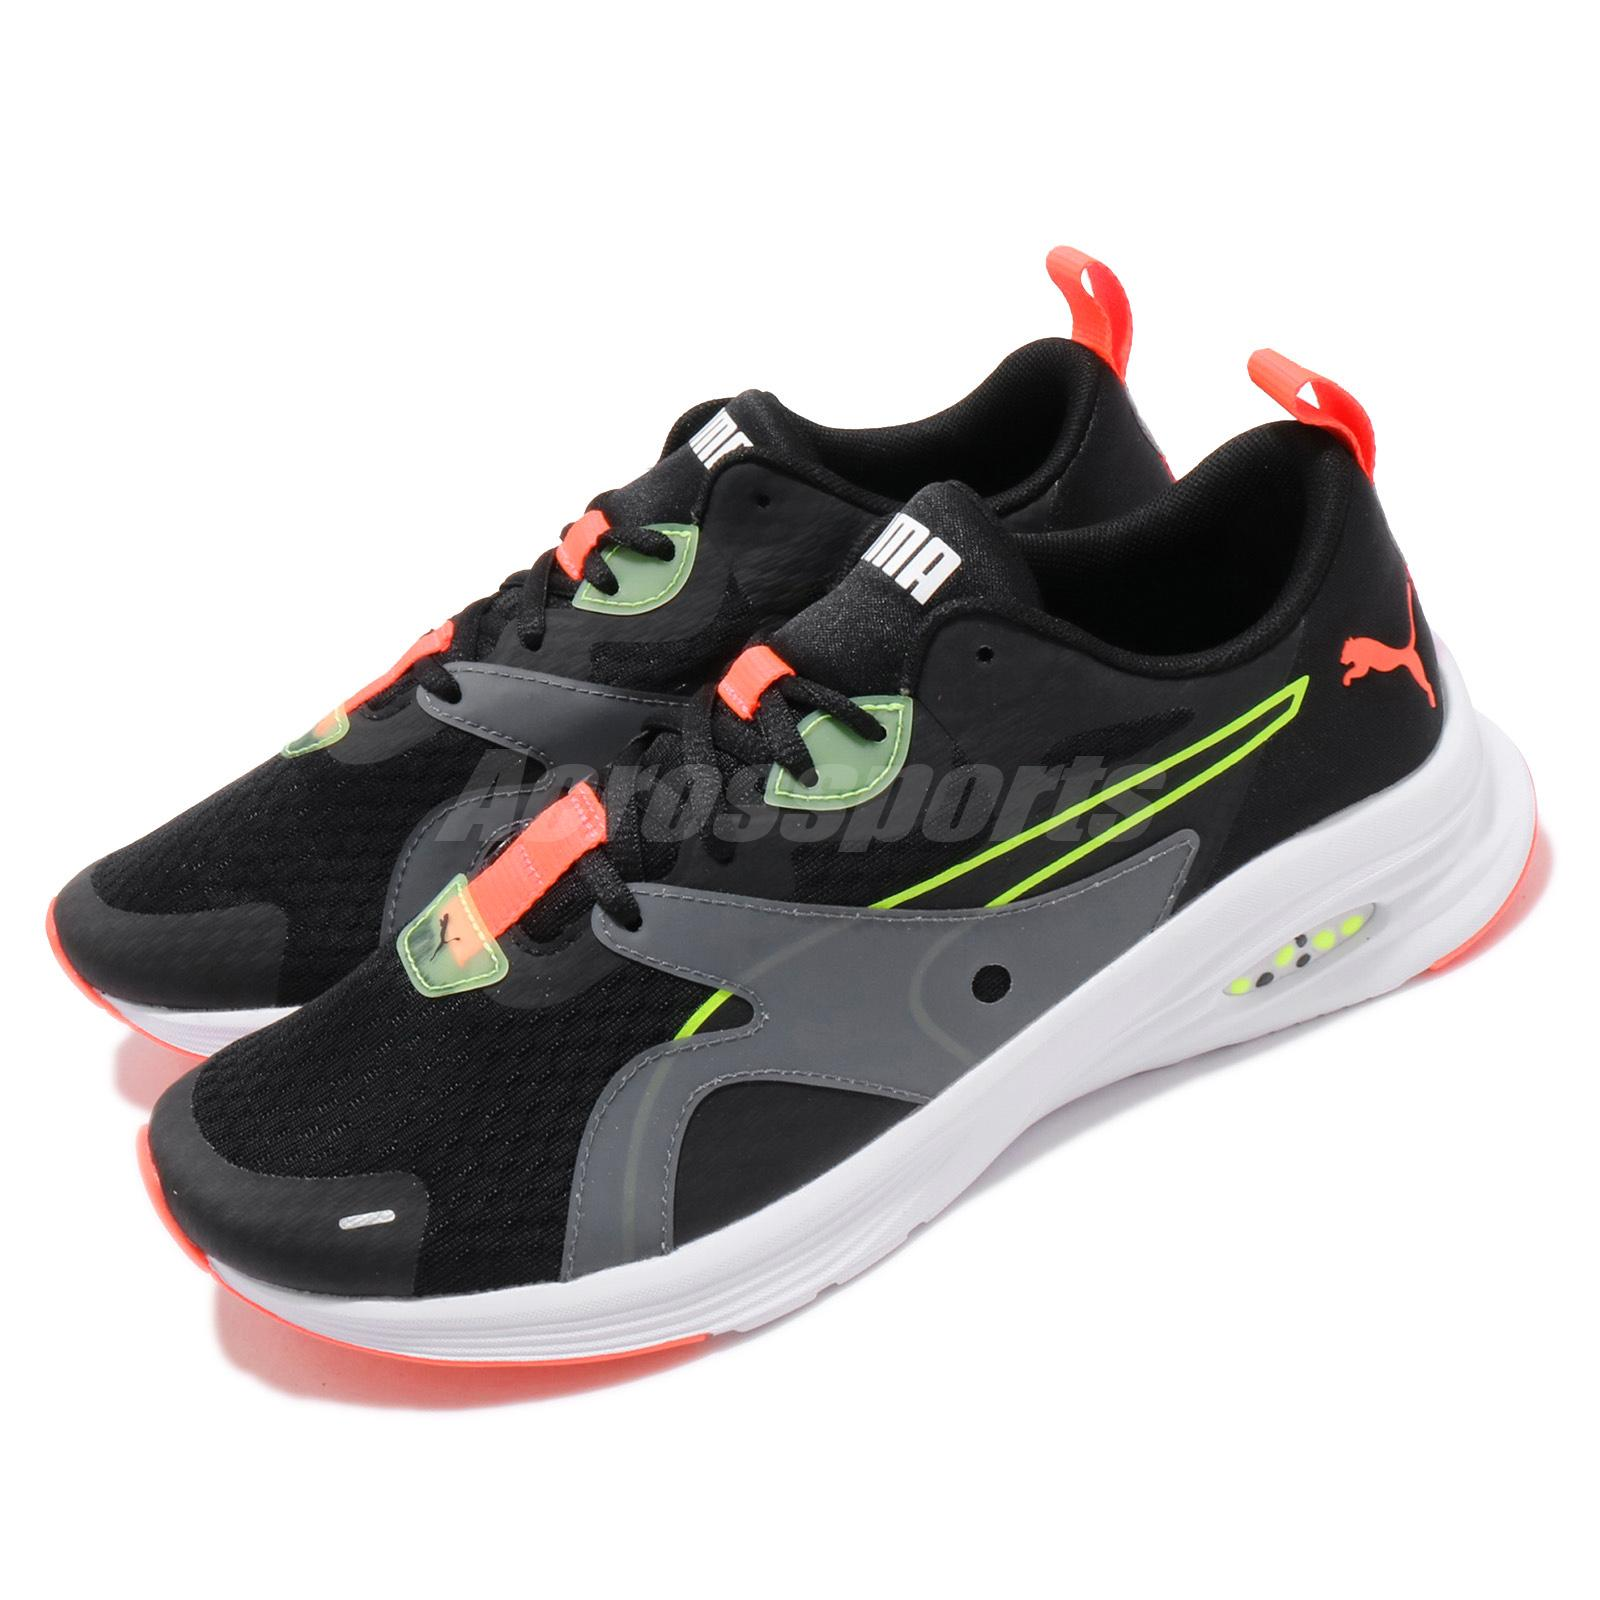 3470e9f2ea Details about Puma Hybrid Fuego Black Yellow White Orange Men Running Shoes  Sneakers 192661-02